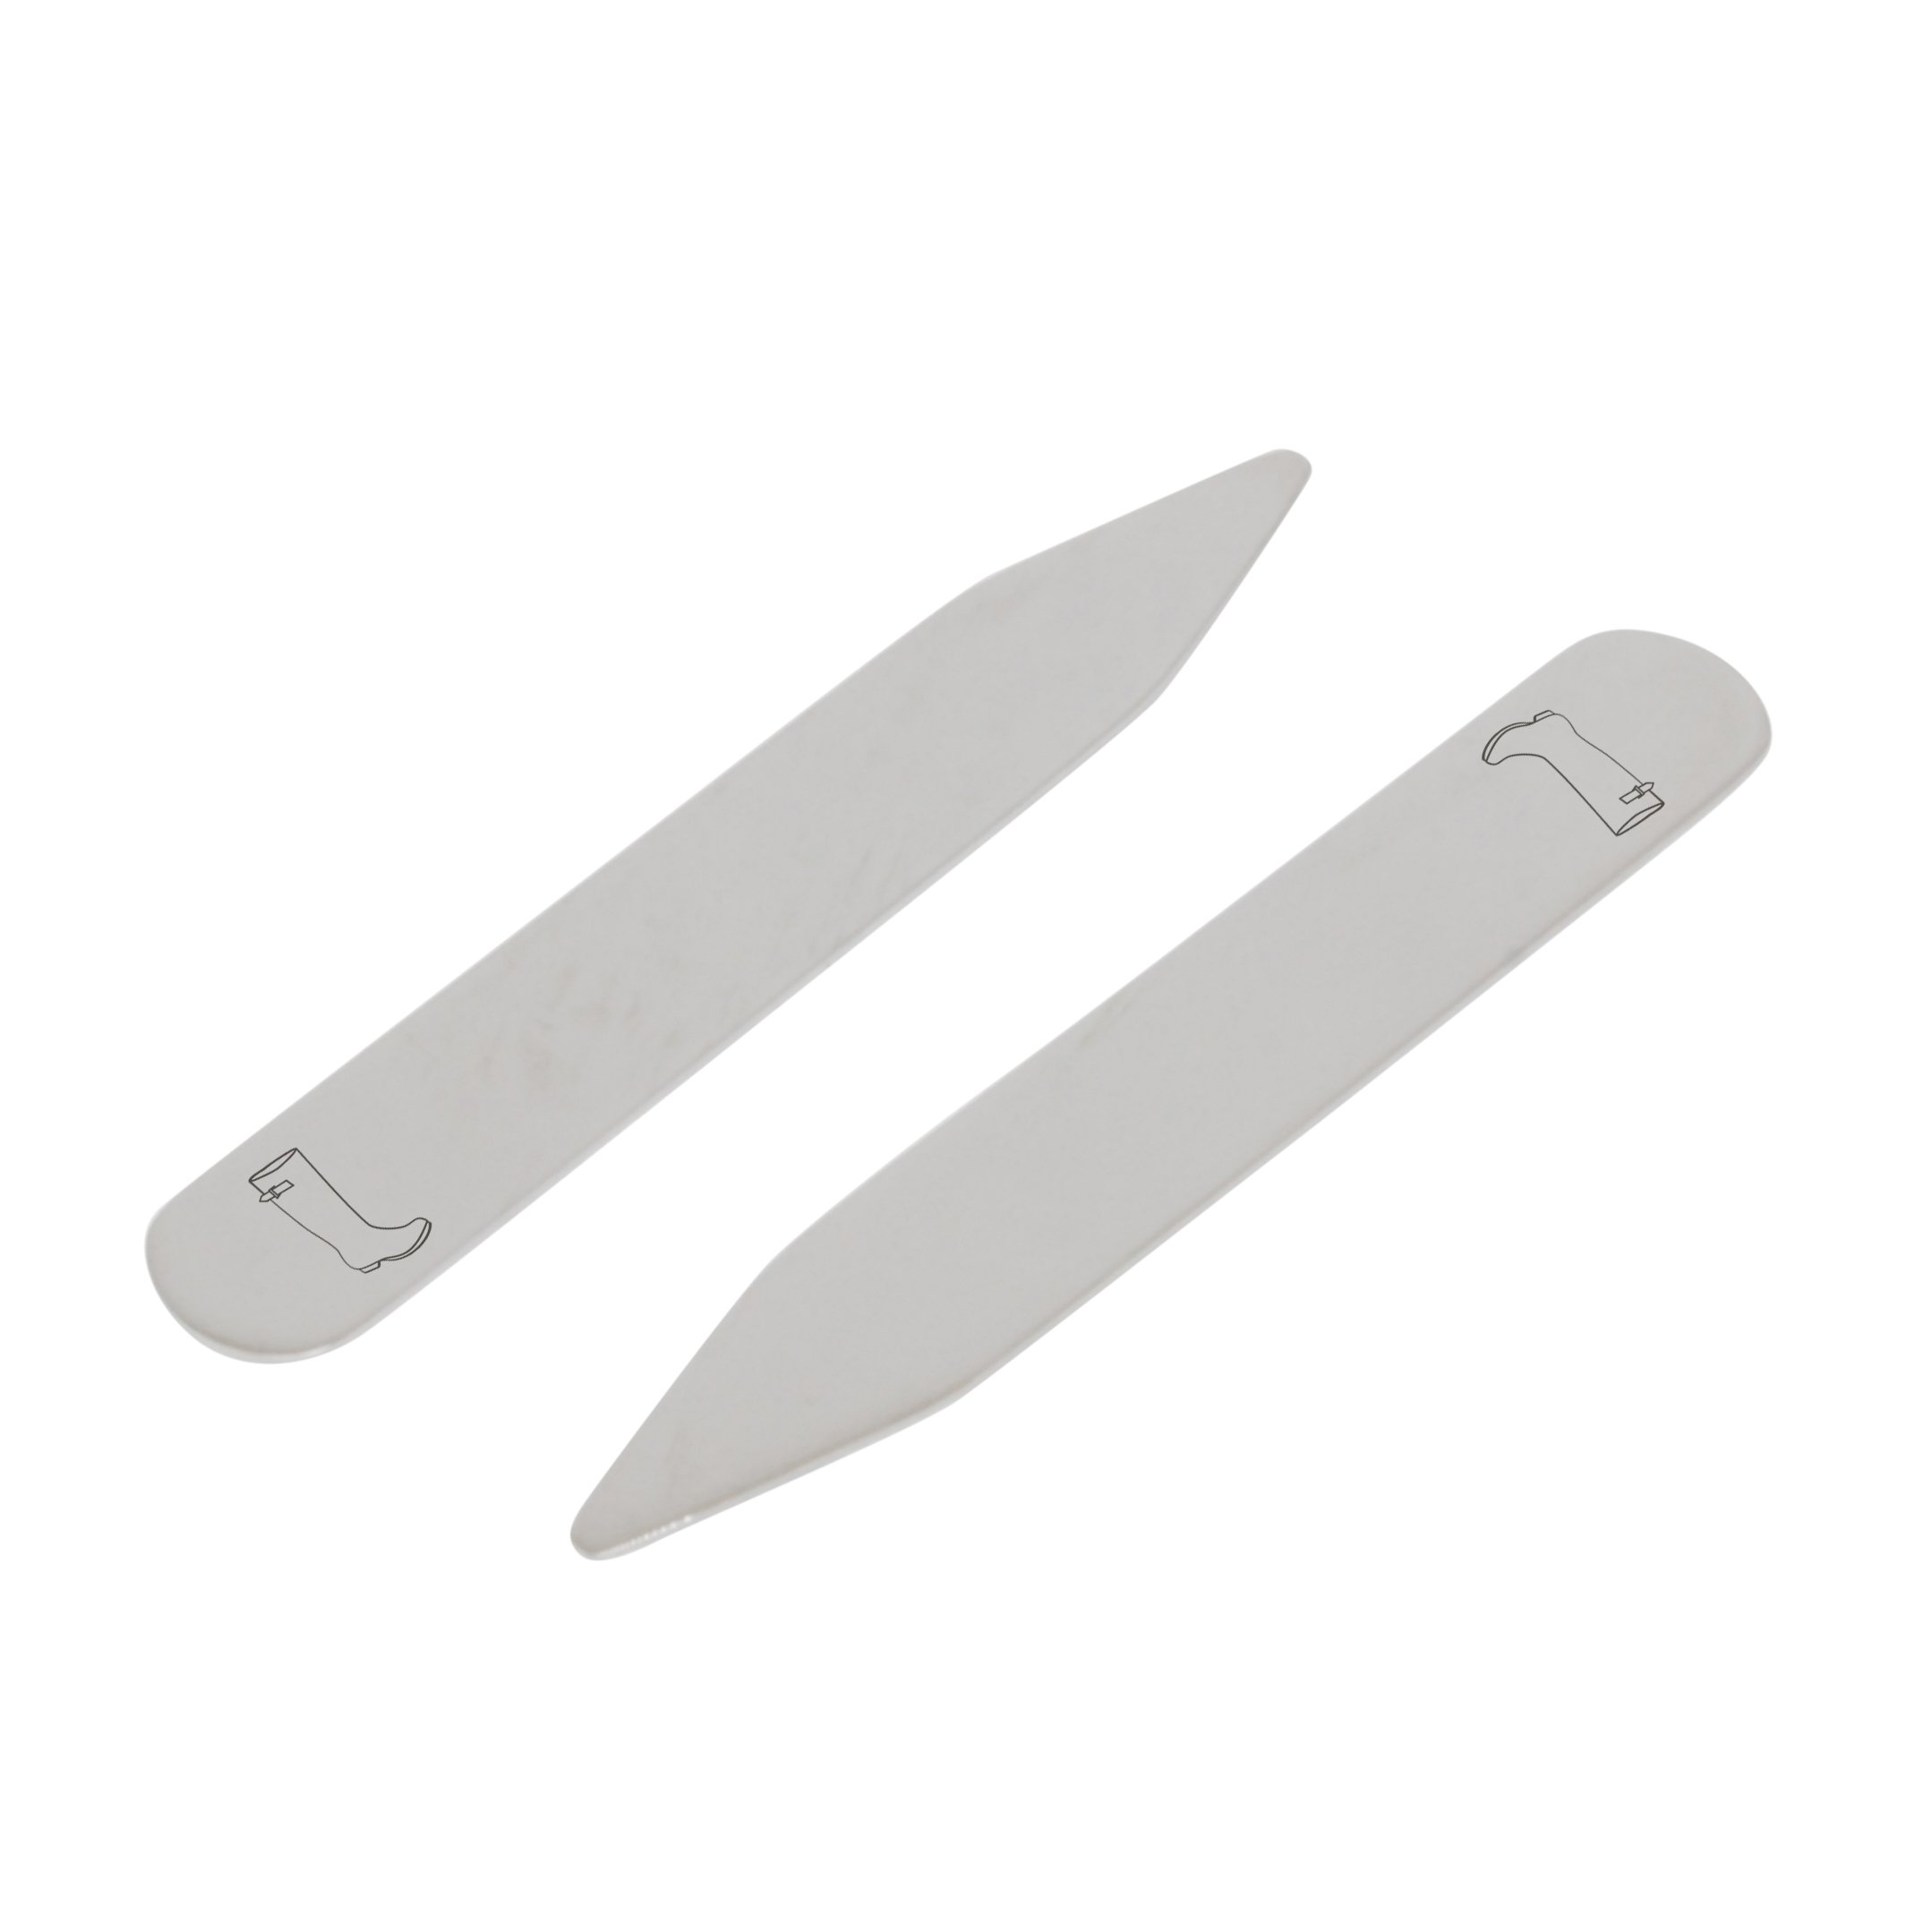 MODERN GOODS SHOP Stainless Steel Collar Stays With Laser Engraved Rain Boot Design - 2.5 Inch Metal Collar Stiffeners - Made In USA